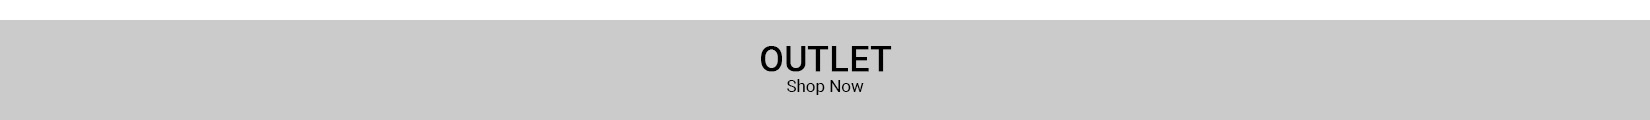 3069_Outlet 018